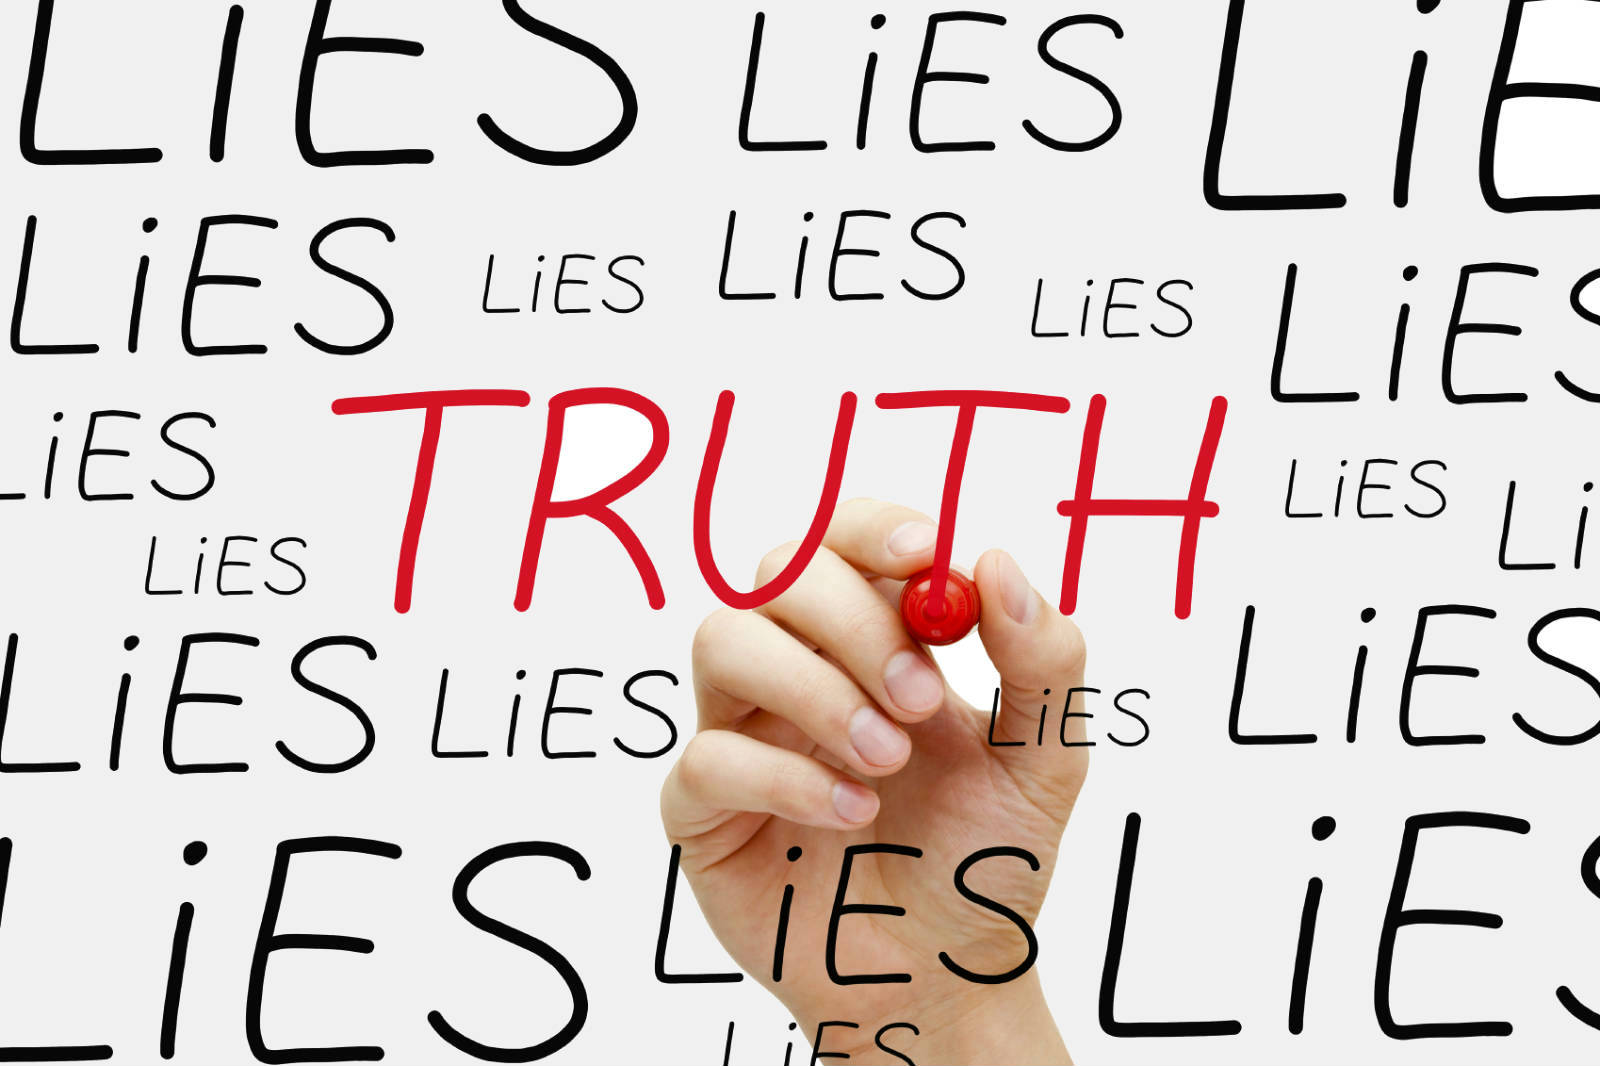 10 Lies About Getting Healthy